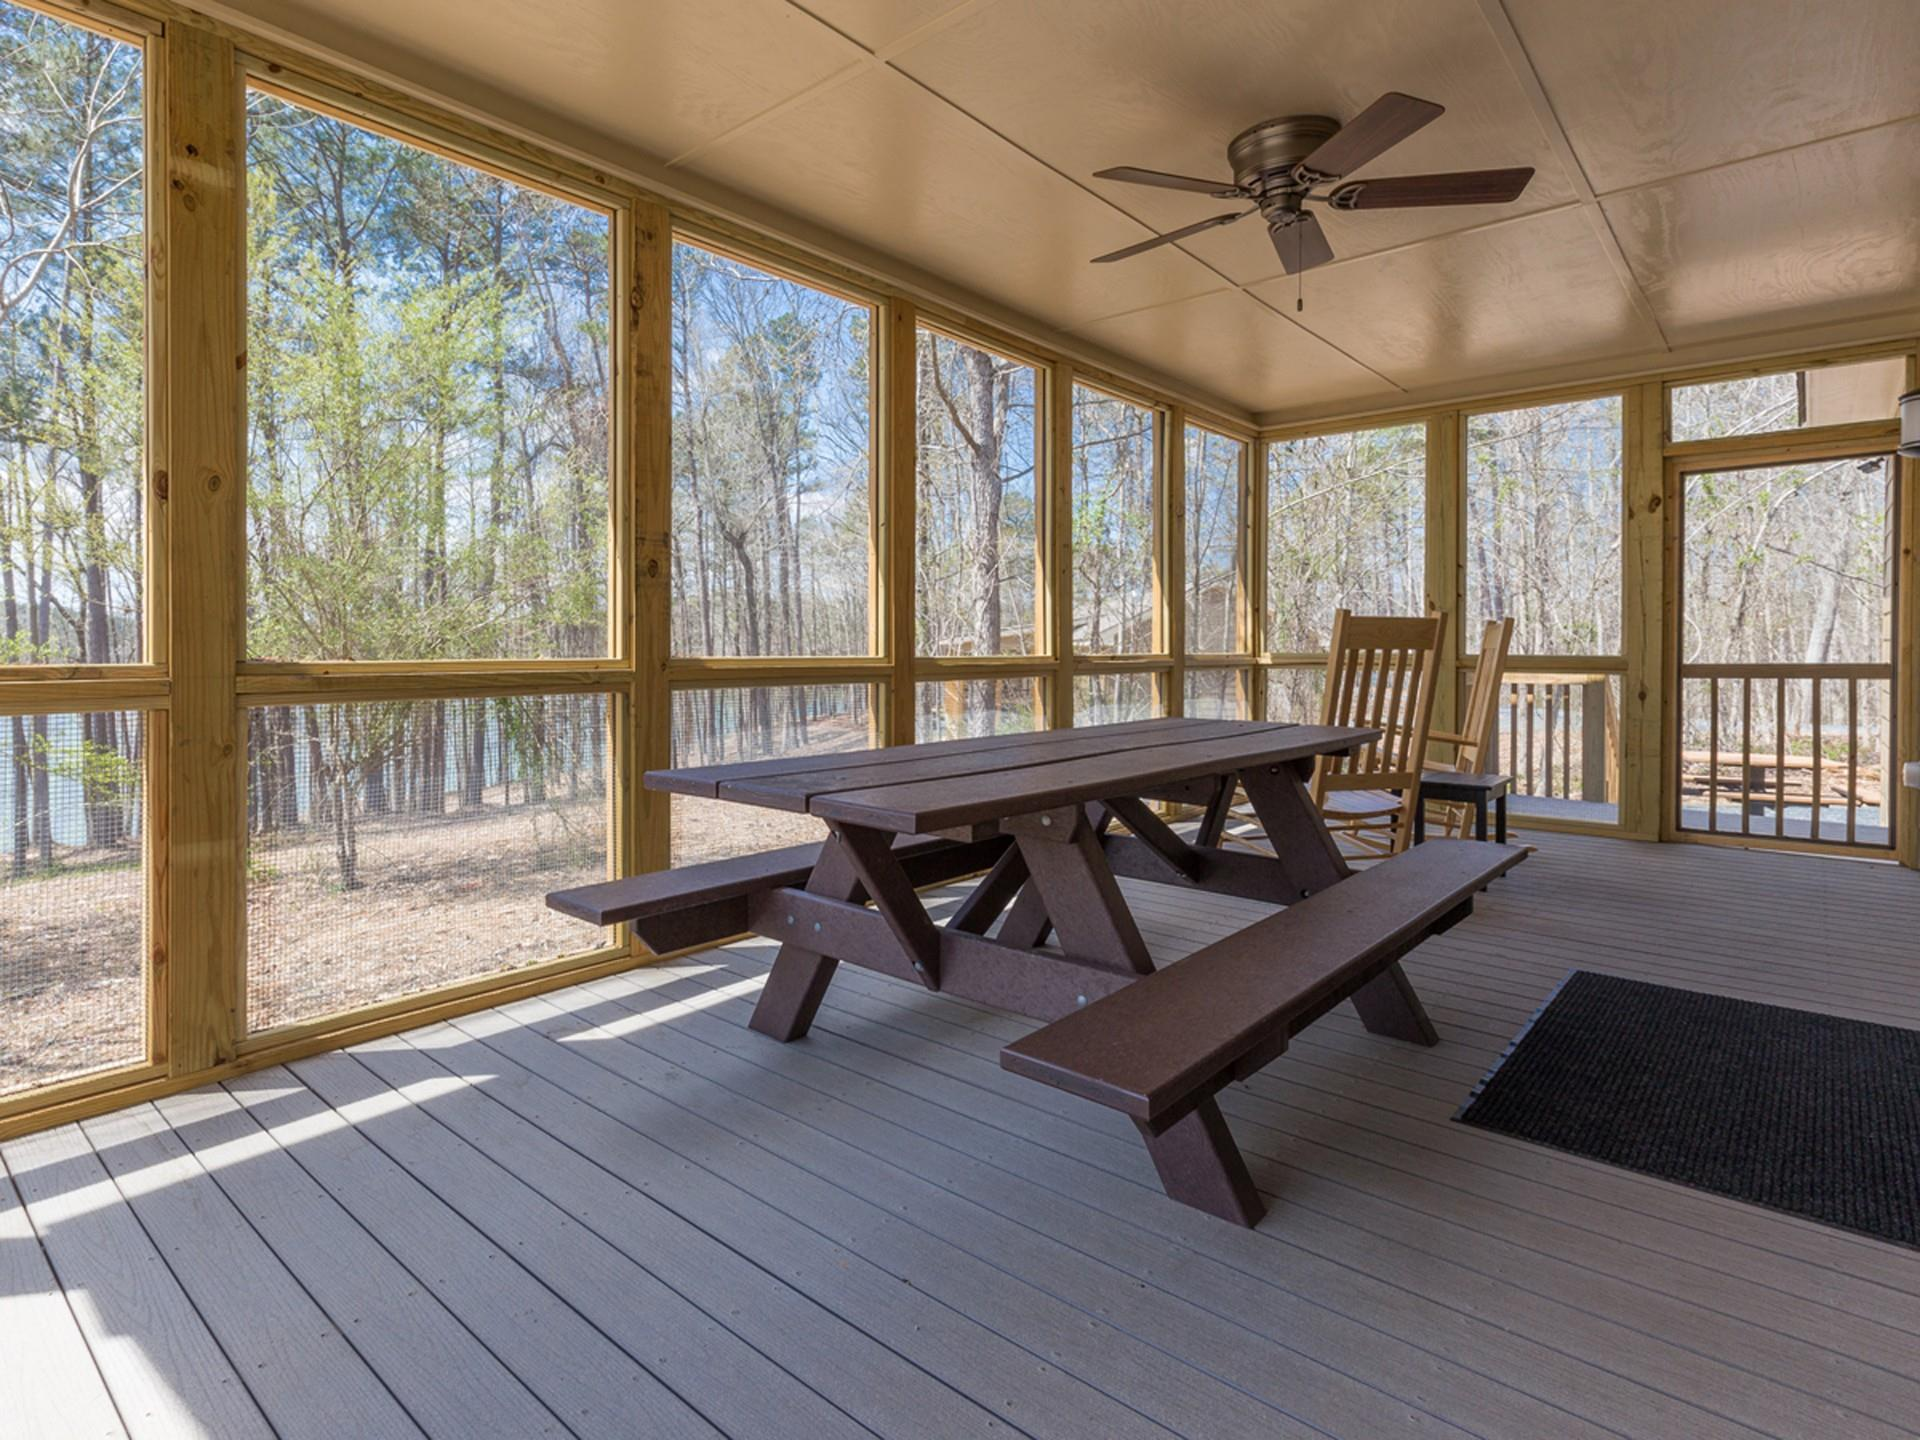 Picnic table on outside screened in porch with ceiling fan  and rocking chairs.